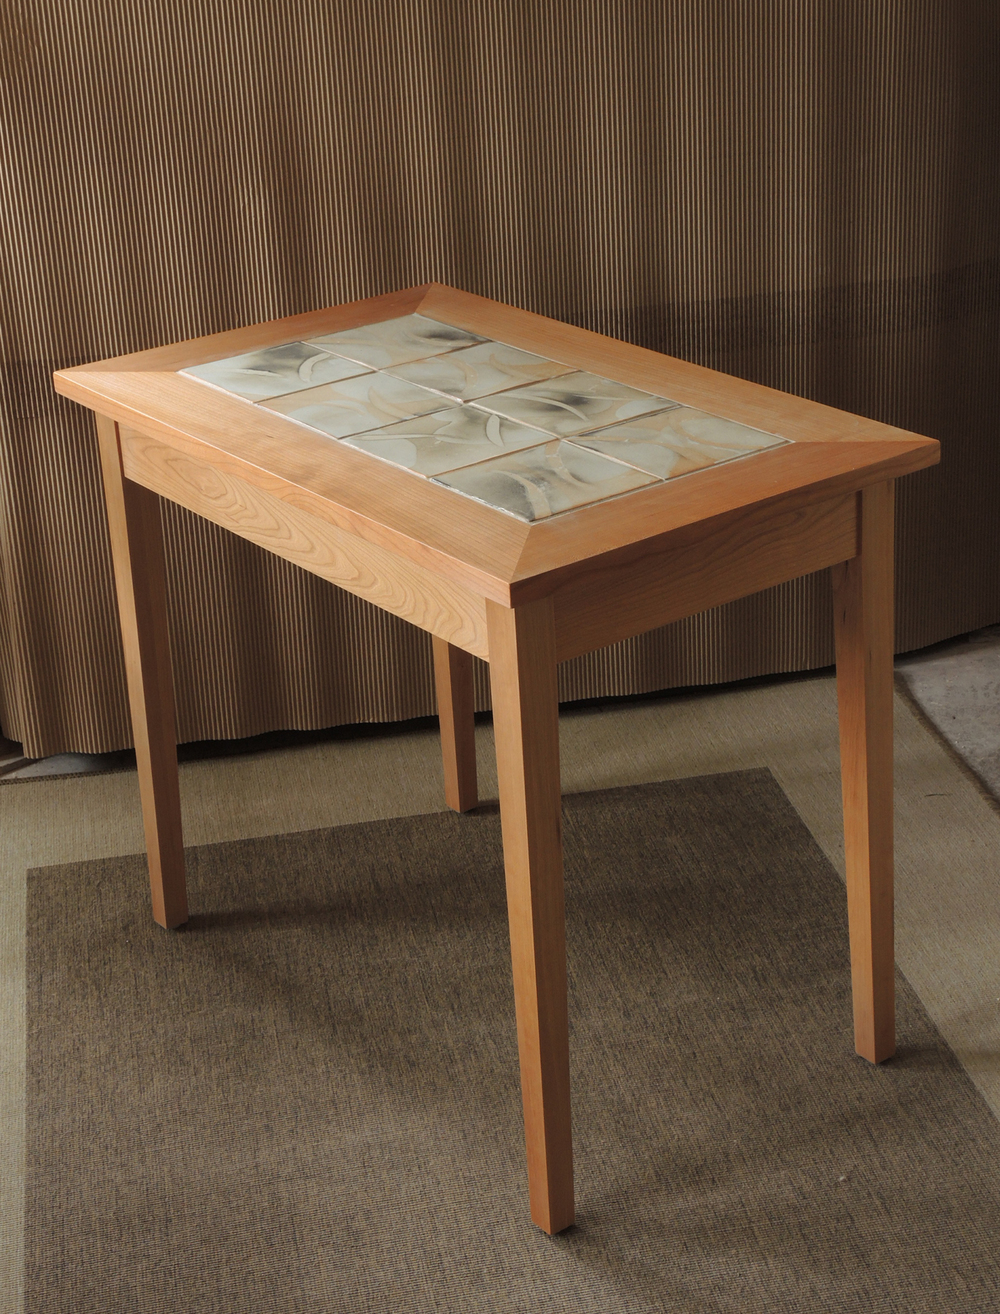 shino tiled table 1.jpg